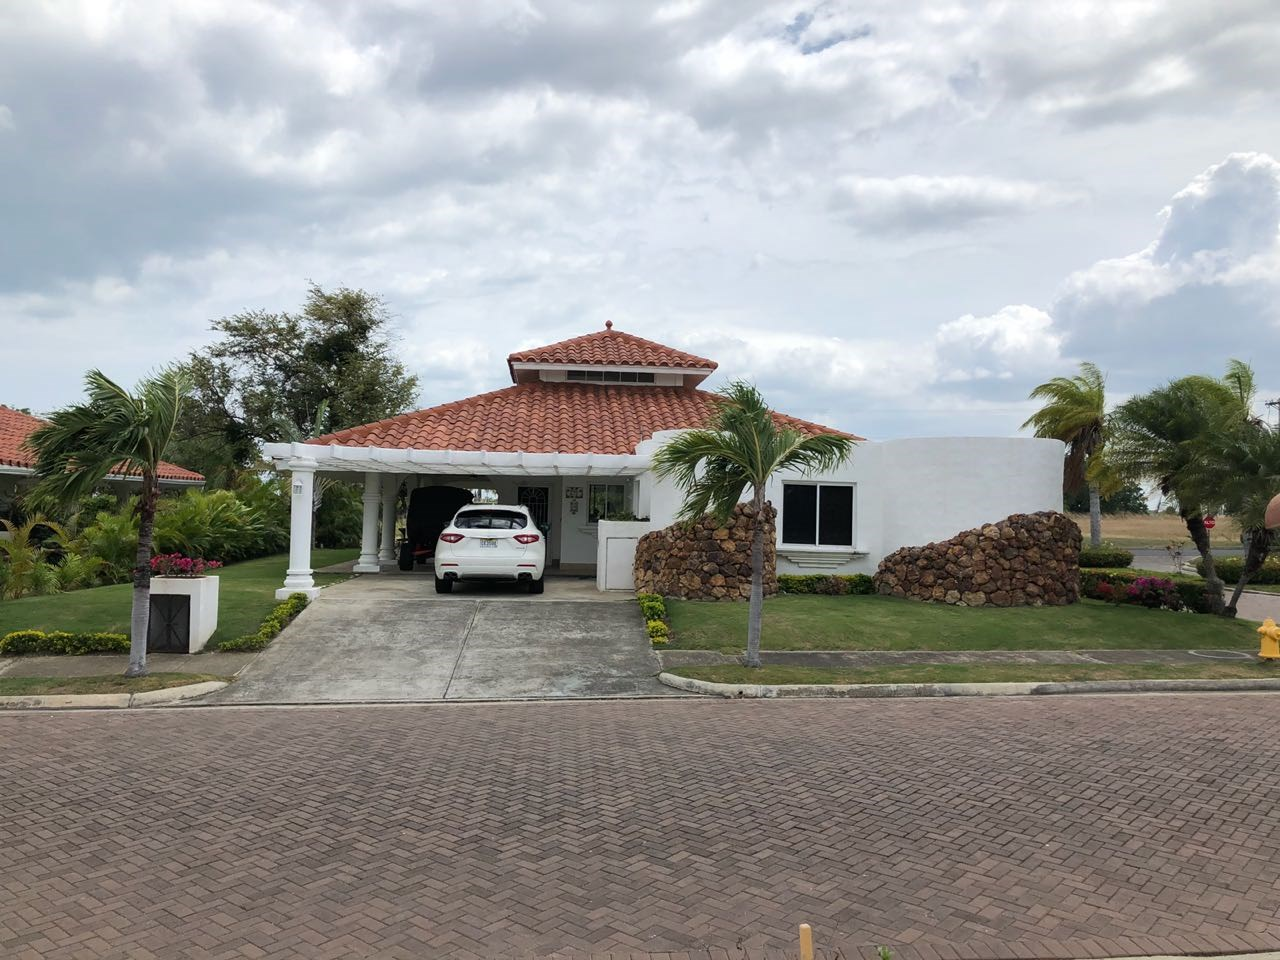 GOLF COURSE VIEW HOUSE FOR SALE/RENT IN VISTAMAR PANAMA